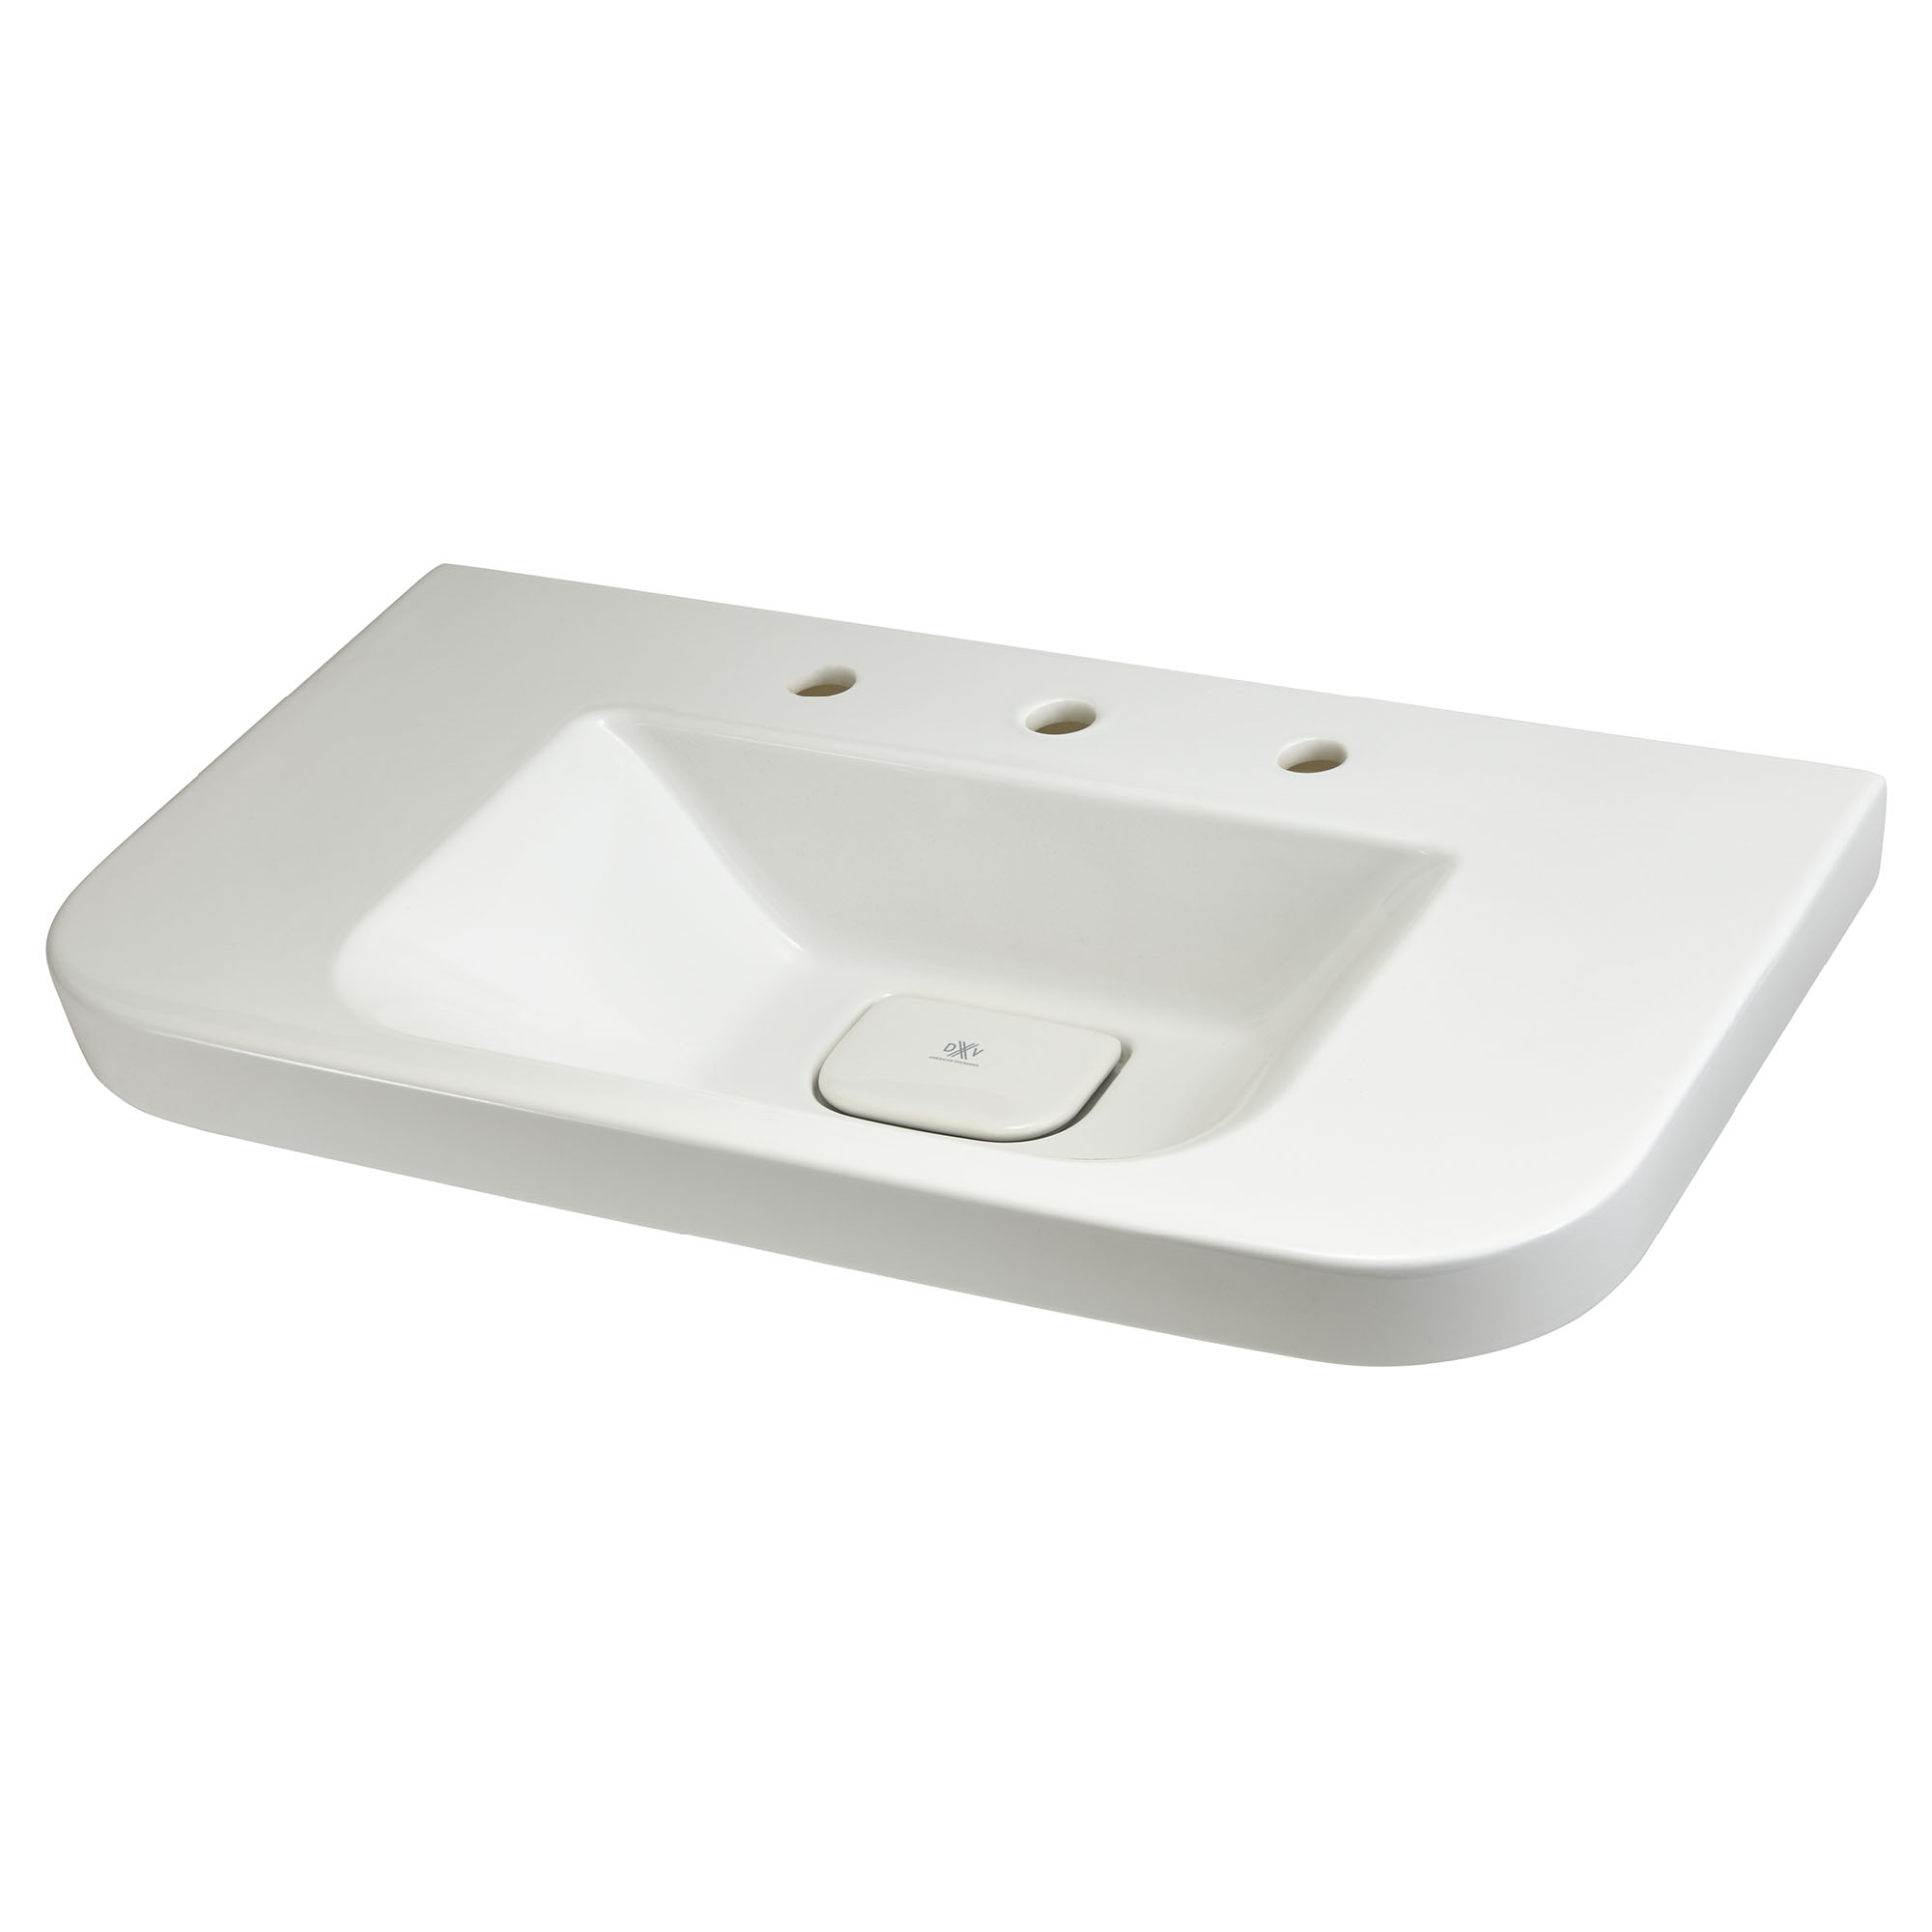 Badkamer Tray Smart Toilet At100 Luxury Electronic Bidet Seat From Dxv